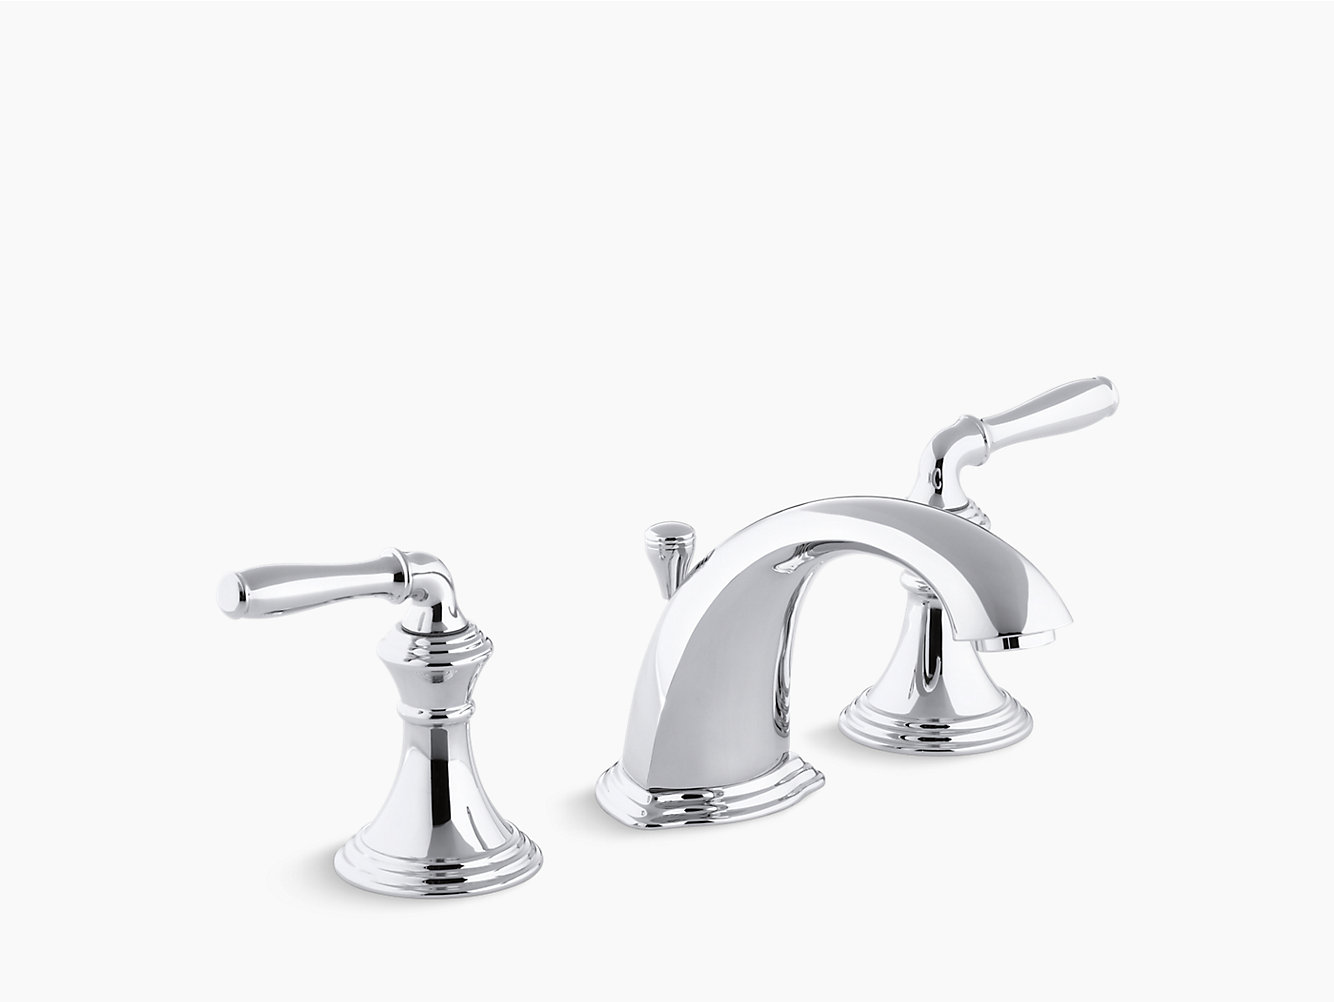 KOHLER Devonshire Widespread Bathroom Sink Faucet With - Kohler devonshire bathroom sink faucet